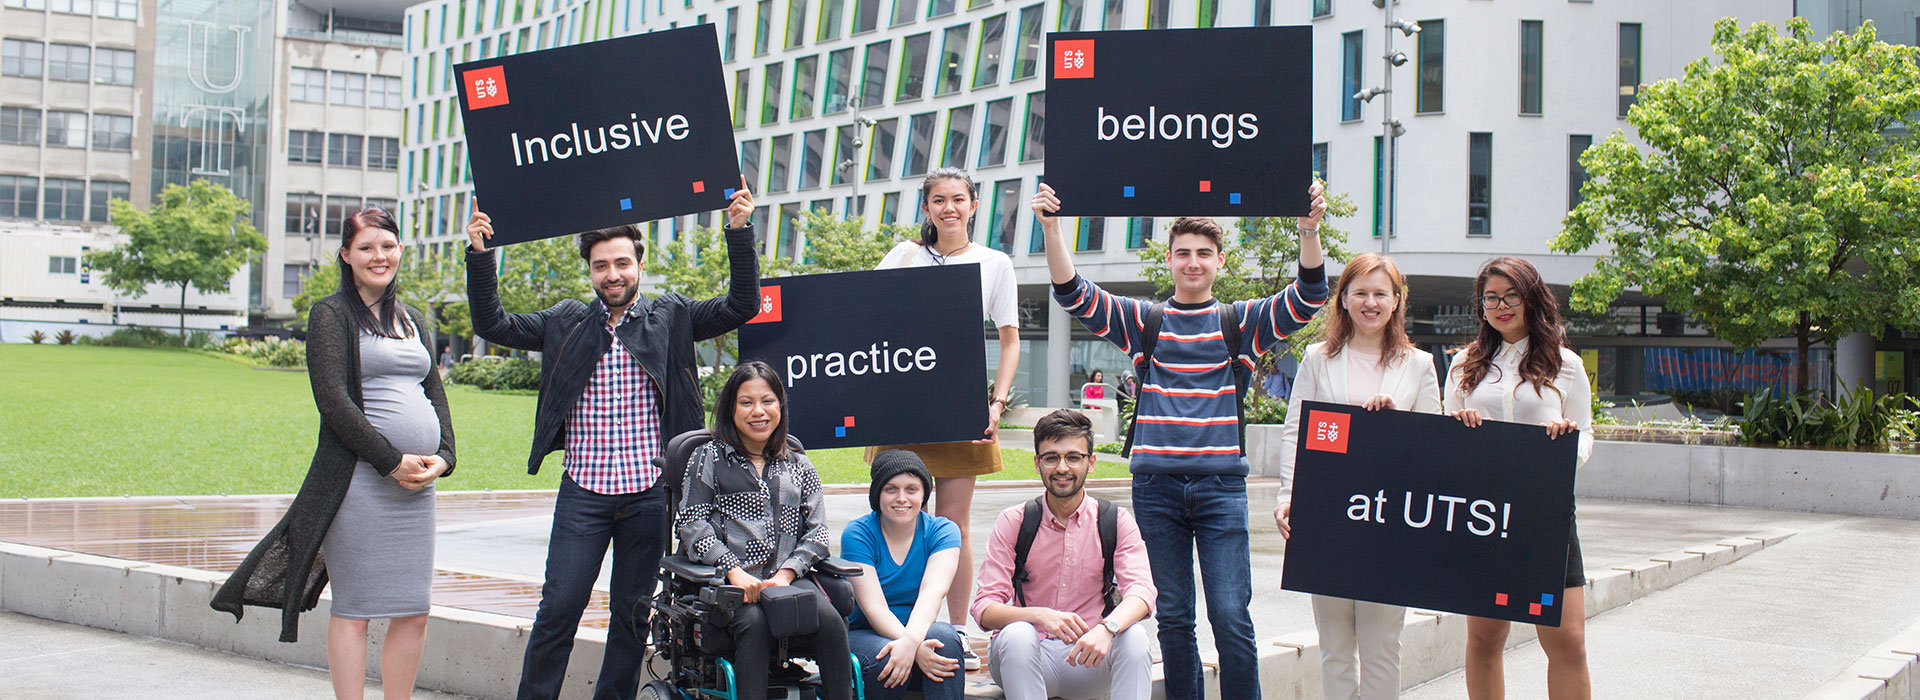 UTS Access Ambassadors holding up signs that say 'Inclusive Practice belongs at UTS'